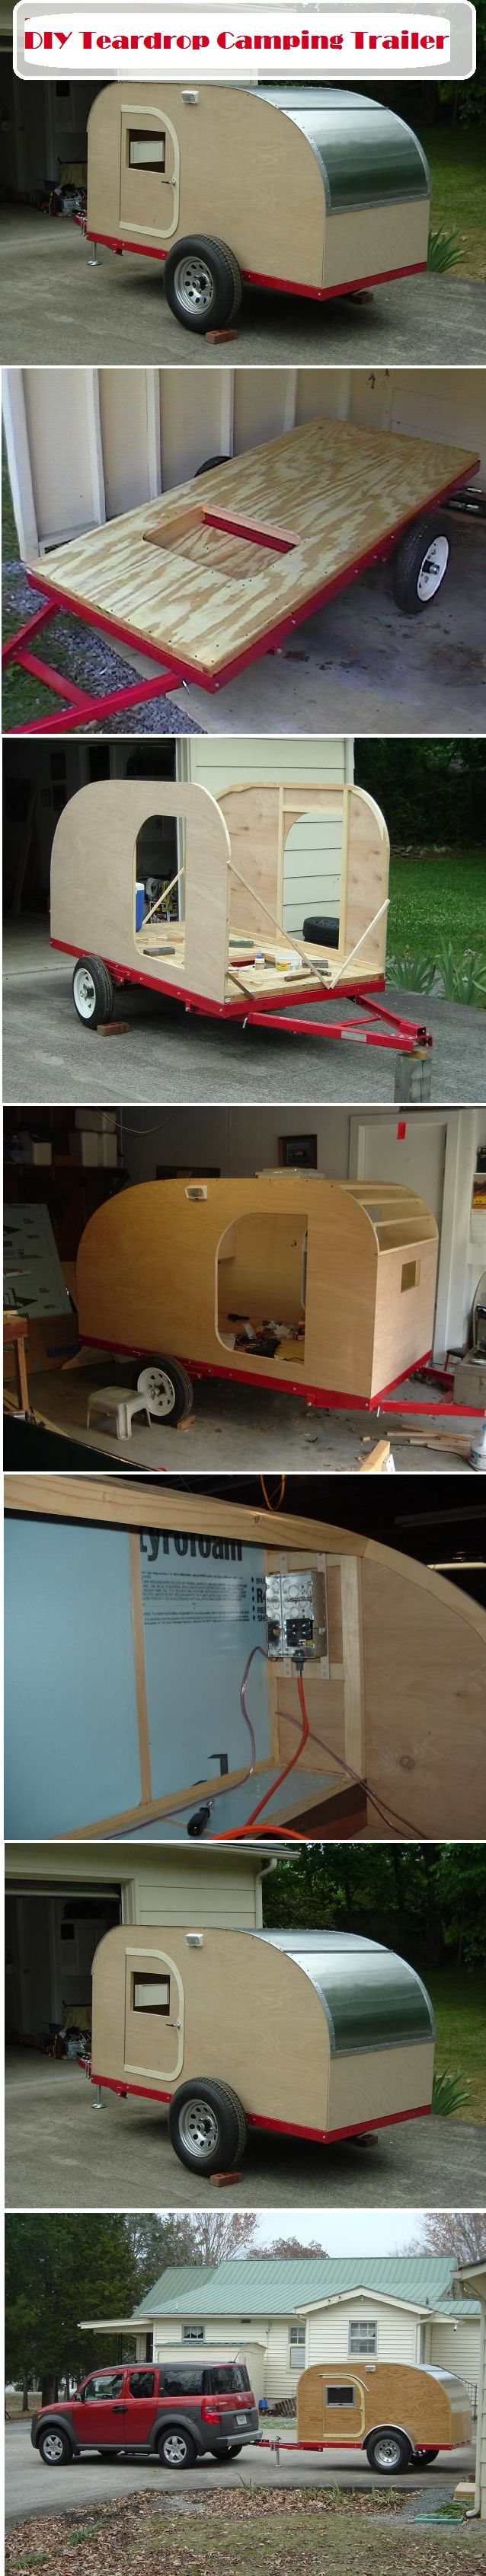 DIY Teardrop Camping Trailer - next woodworking project, @Yves Bonis Conseil Paul Scherer Metzler ??? :)